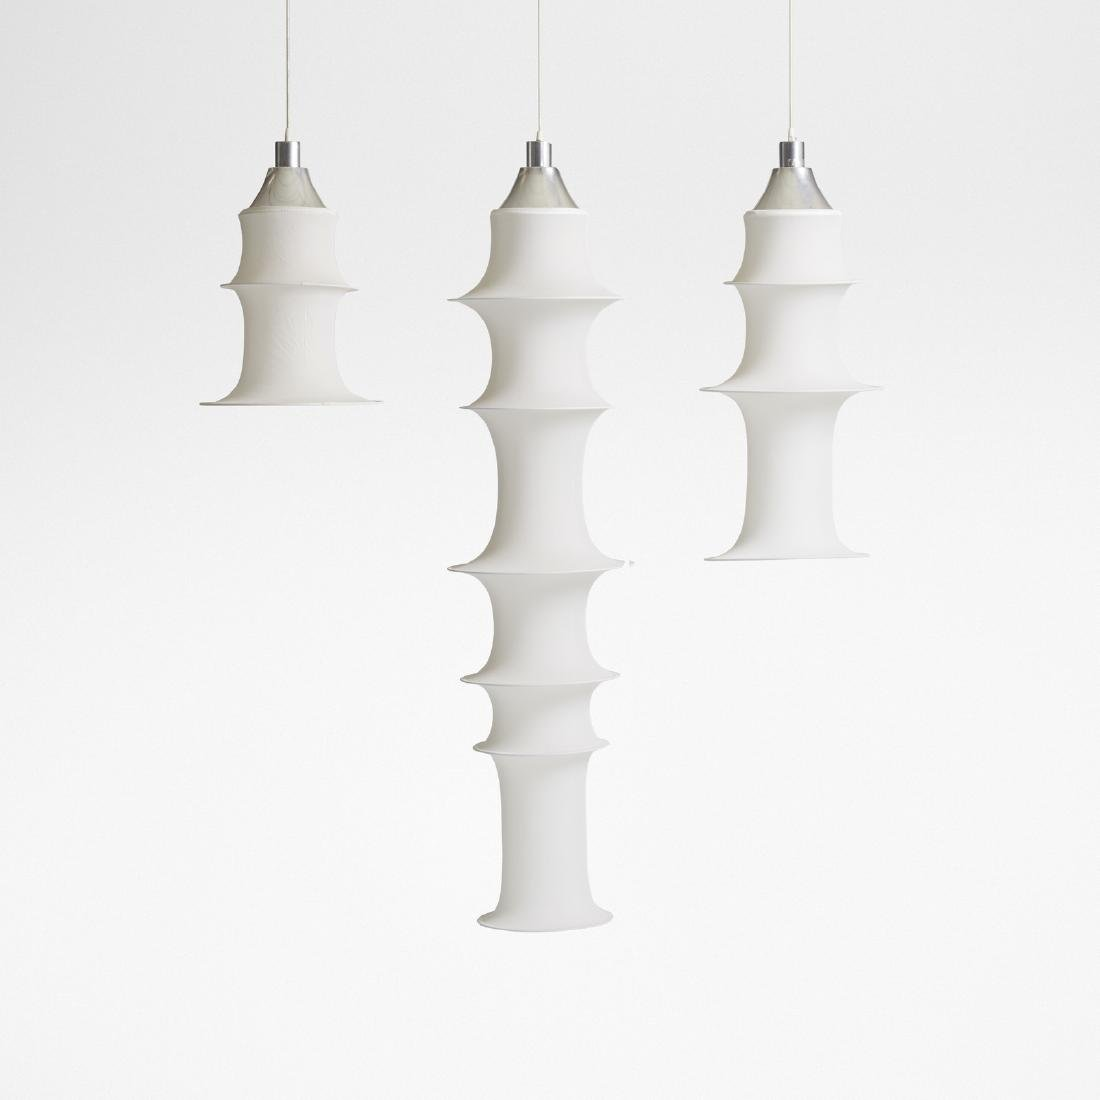 Bruno Munari, 3 Falkland hanging light fixtures